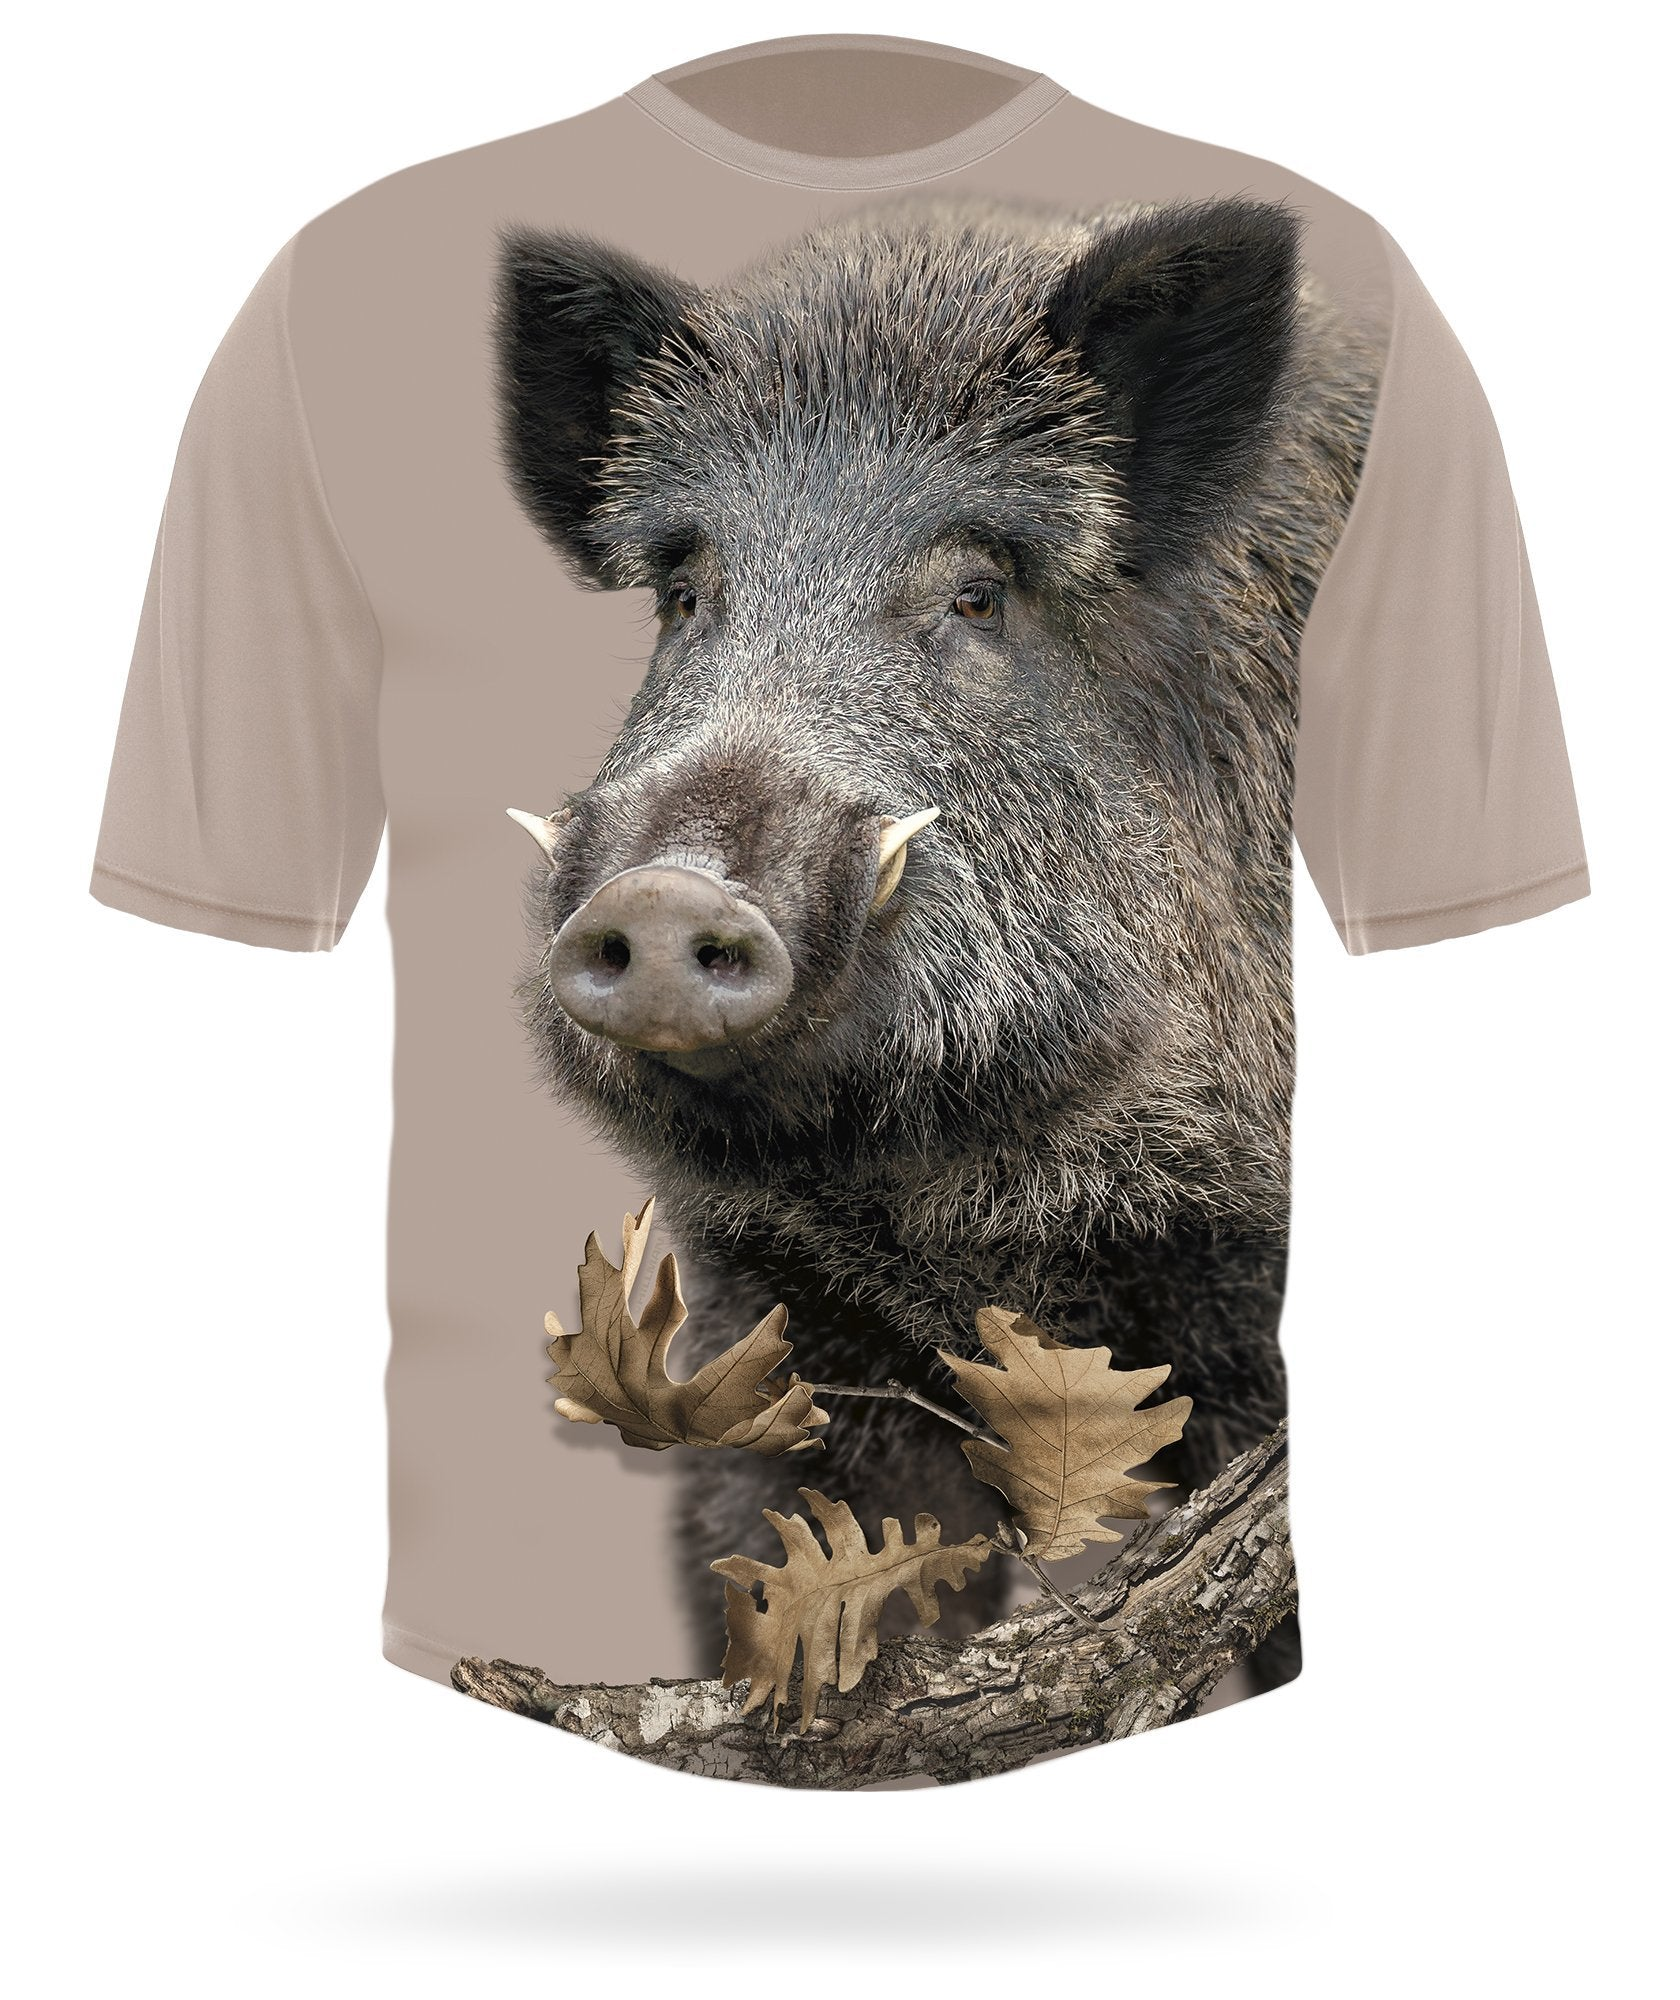 Wild Boar T-Shirt - Short Sleeve